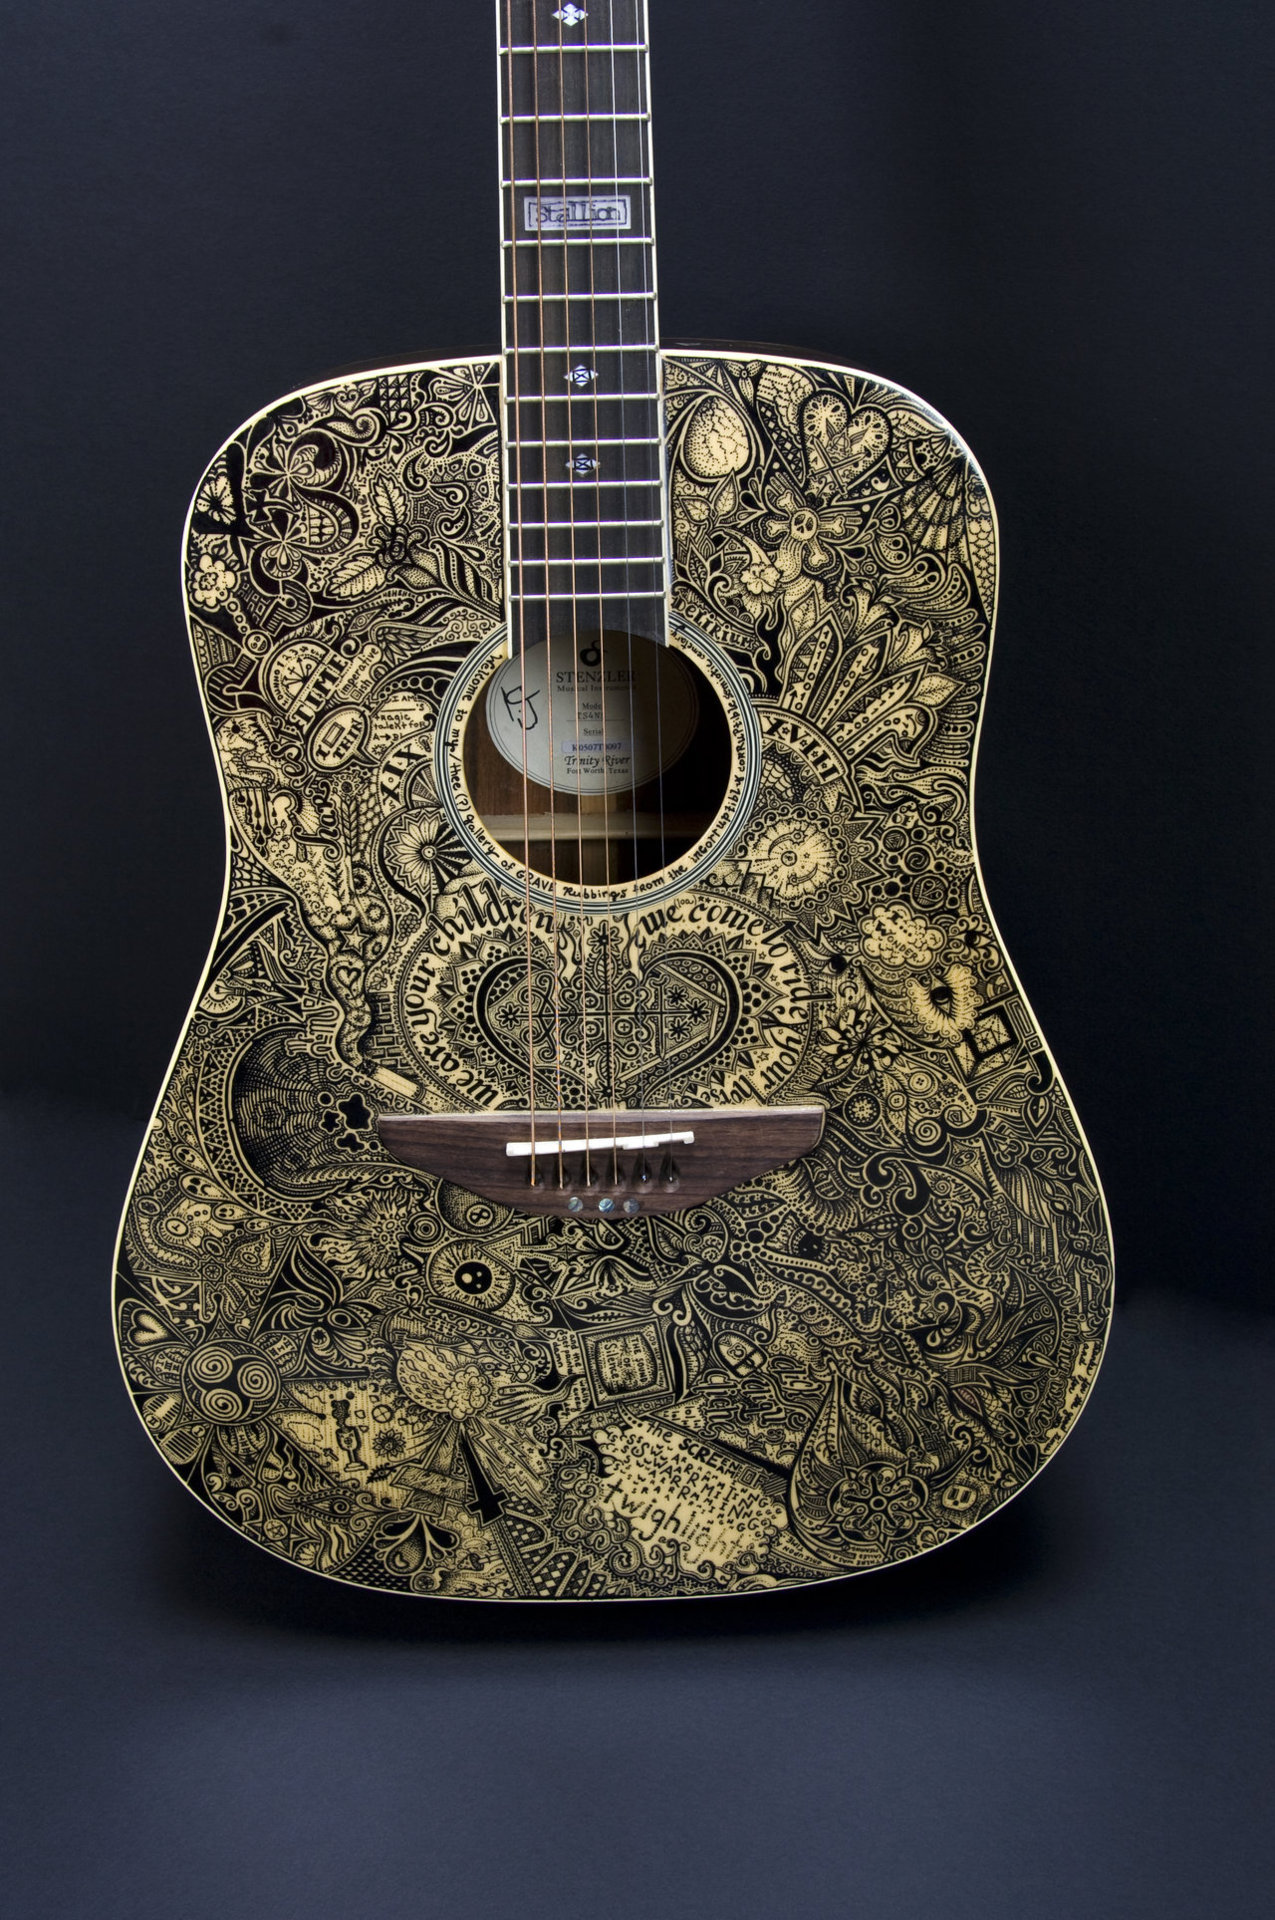 gaksdesigns:  Sharpie guitar illustration by Sprat